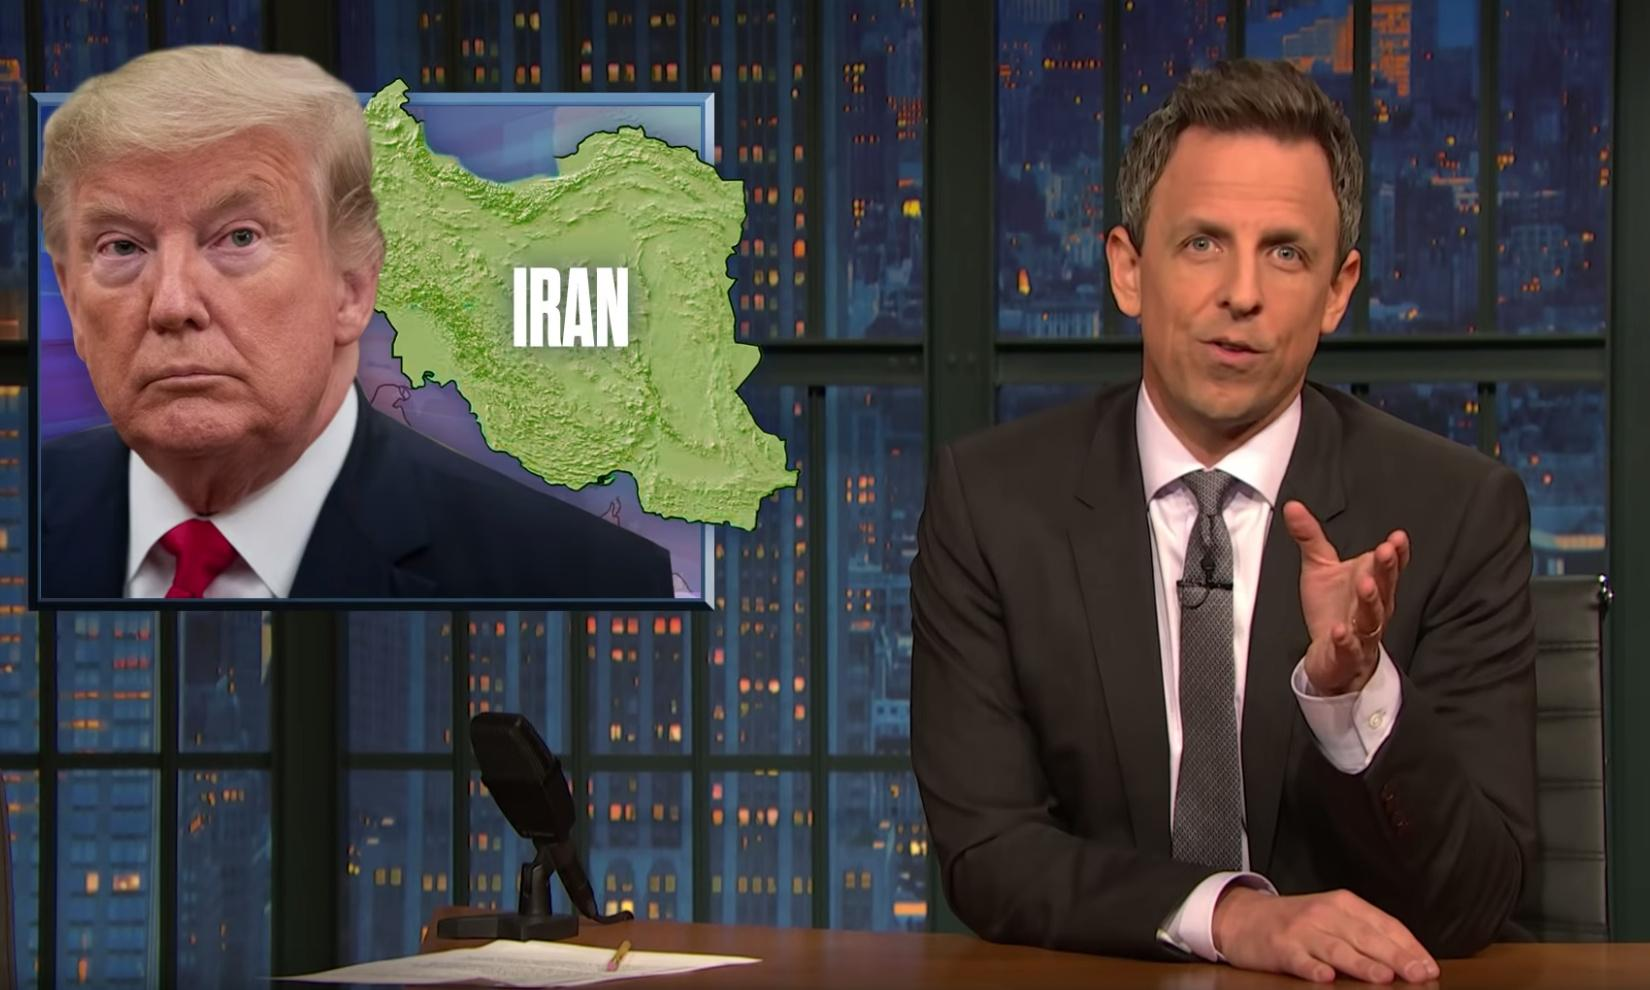 Seth Meyers on Trump's justification for Iran hit: 'We've been through this before'